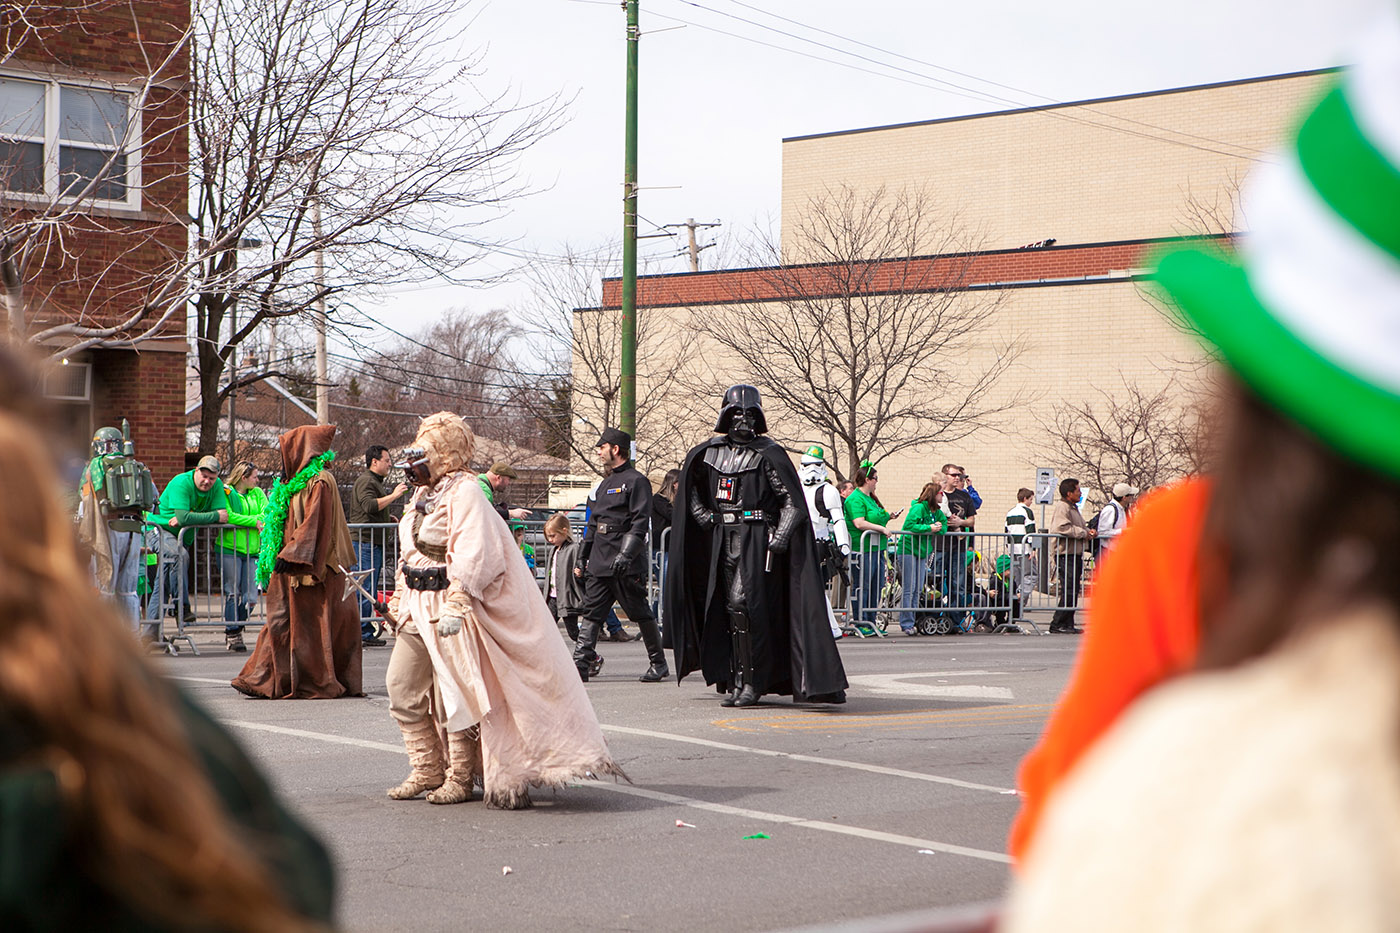 Darth Vader at the Chicago South Side Irish Parade 2015 - St. Patrick's Day